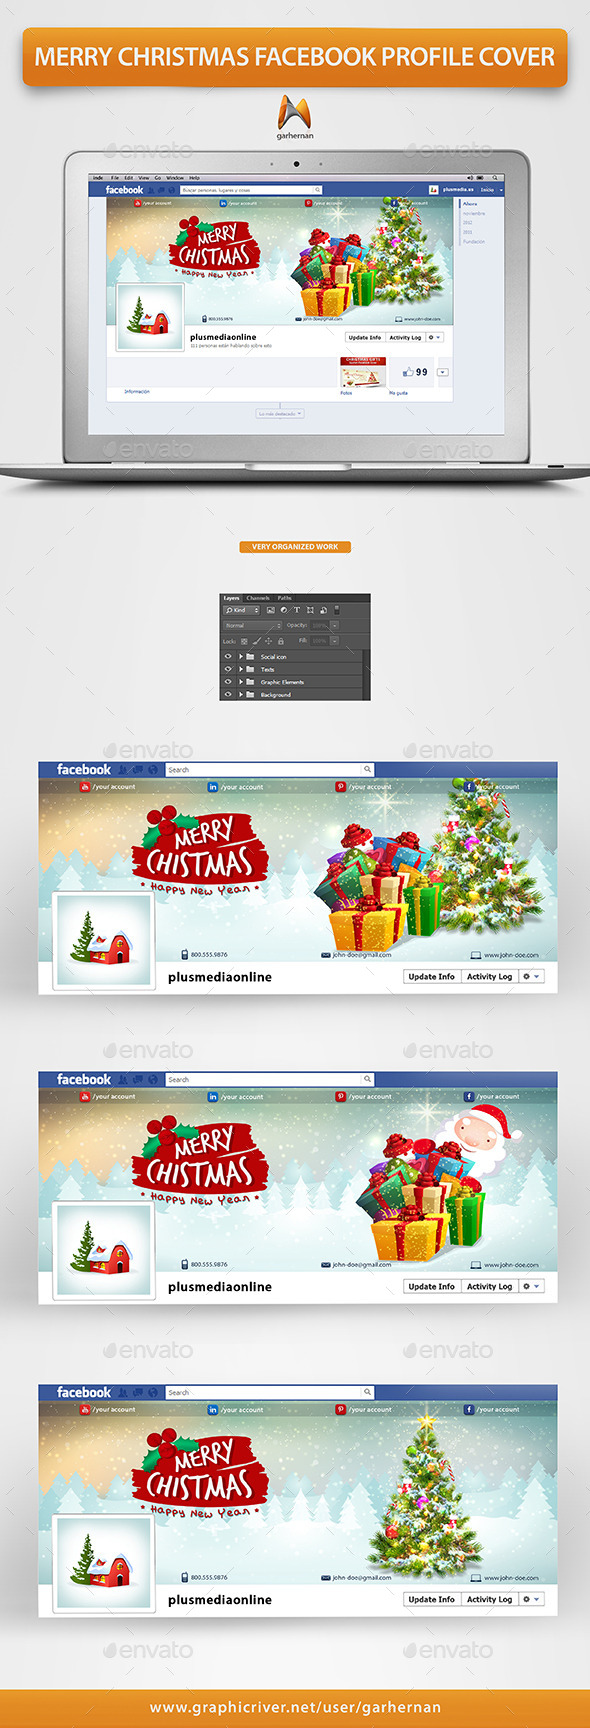 GraphicRiver Merry Christmas Facebook Profile Cover 9696381